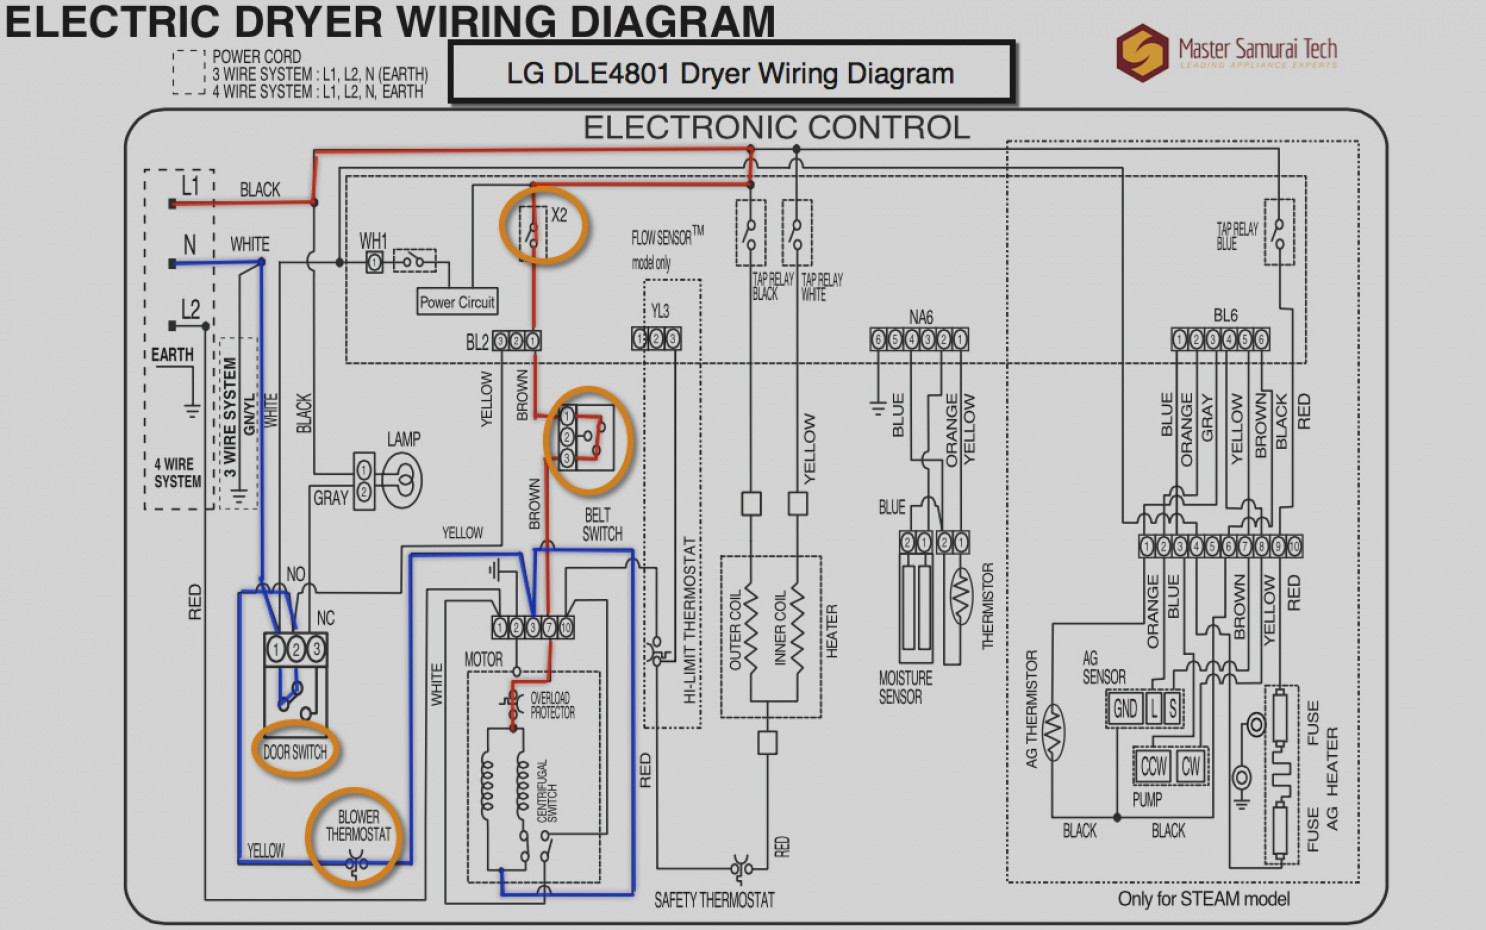 Dryer plug wiring diagram elegant wiring diagram image amazing estate whirlpool dryer wiring schematic diagram for the new and amana asfbconference2016 Choice Image